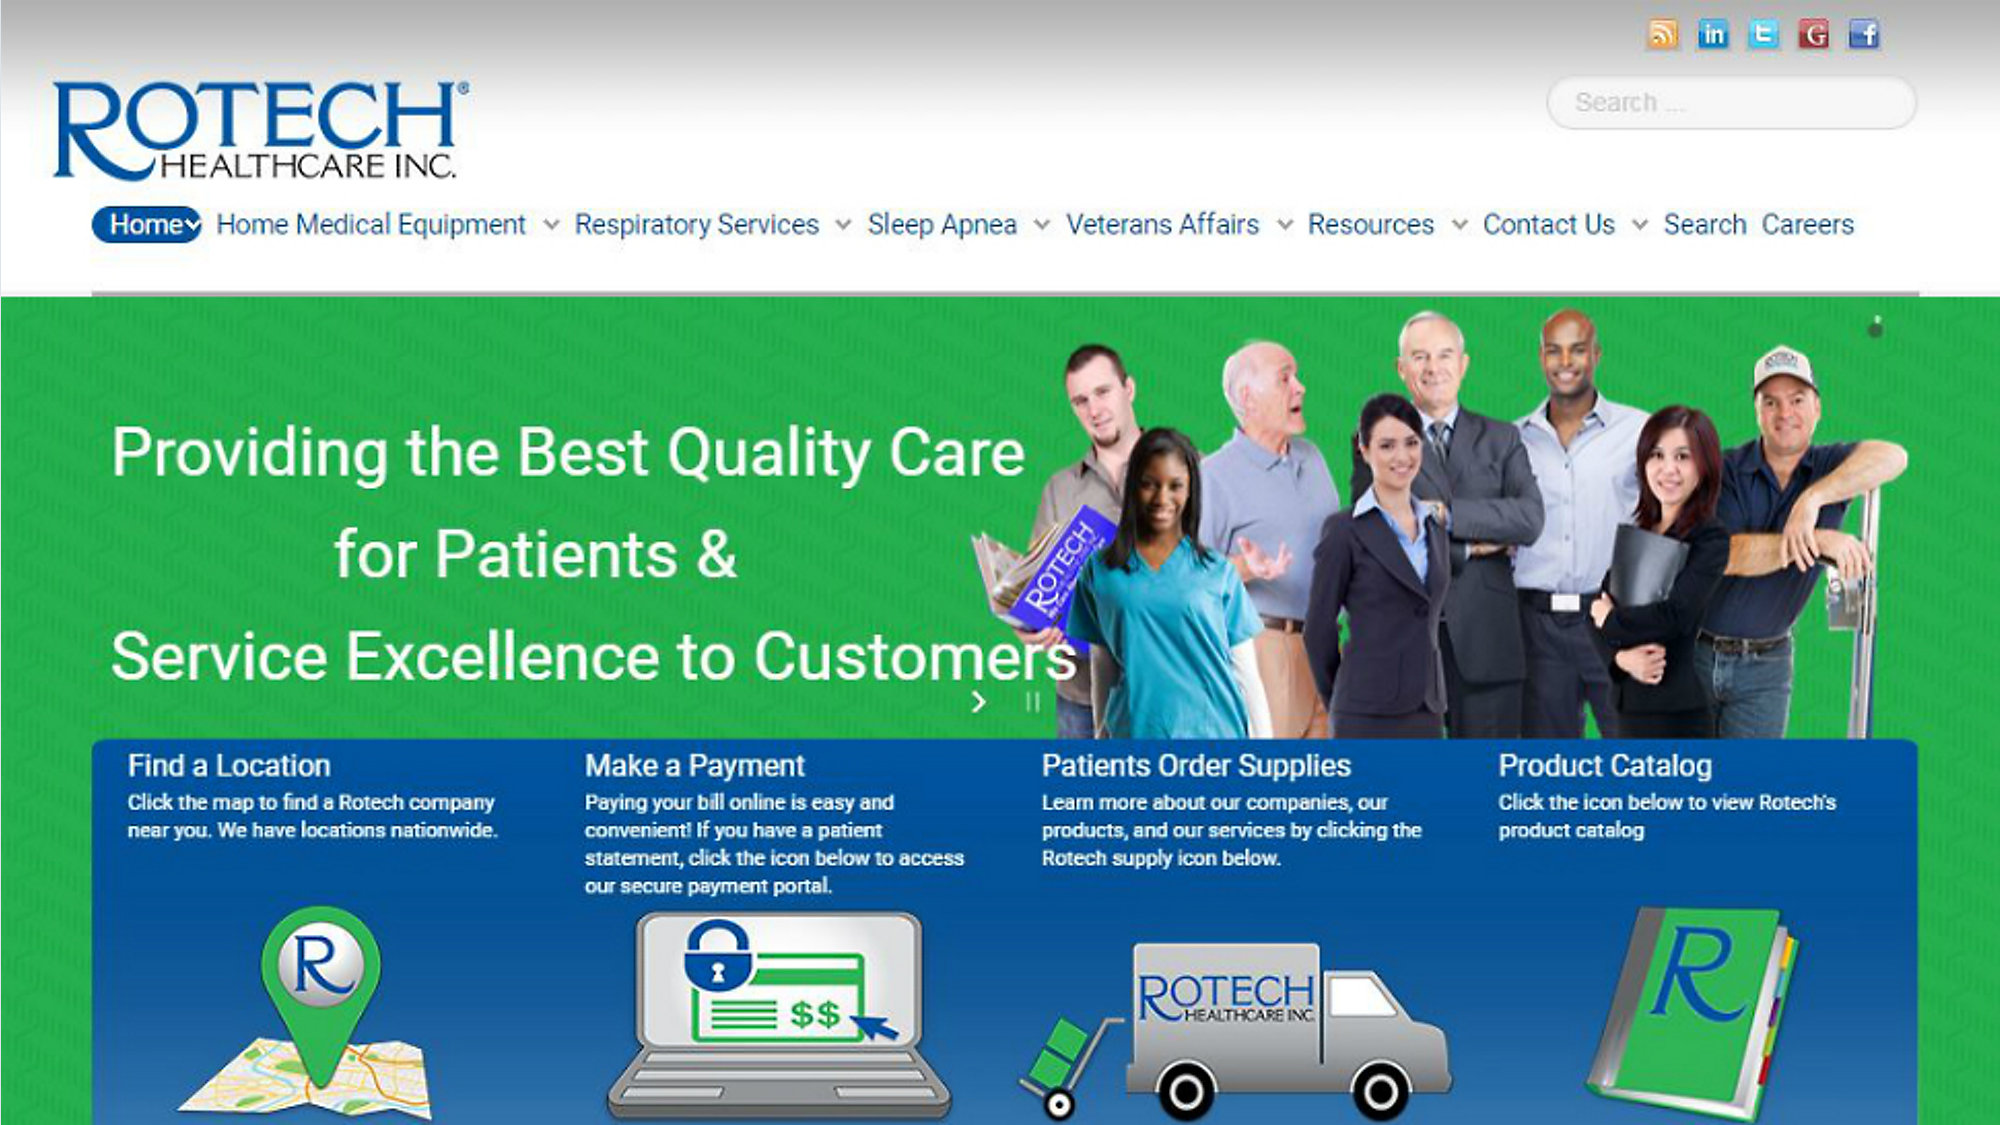 Orlando medical supplier to pay $10M settlement after